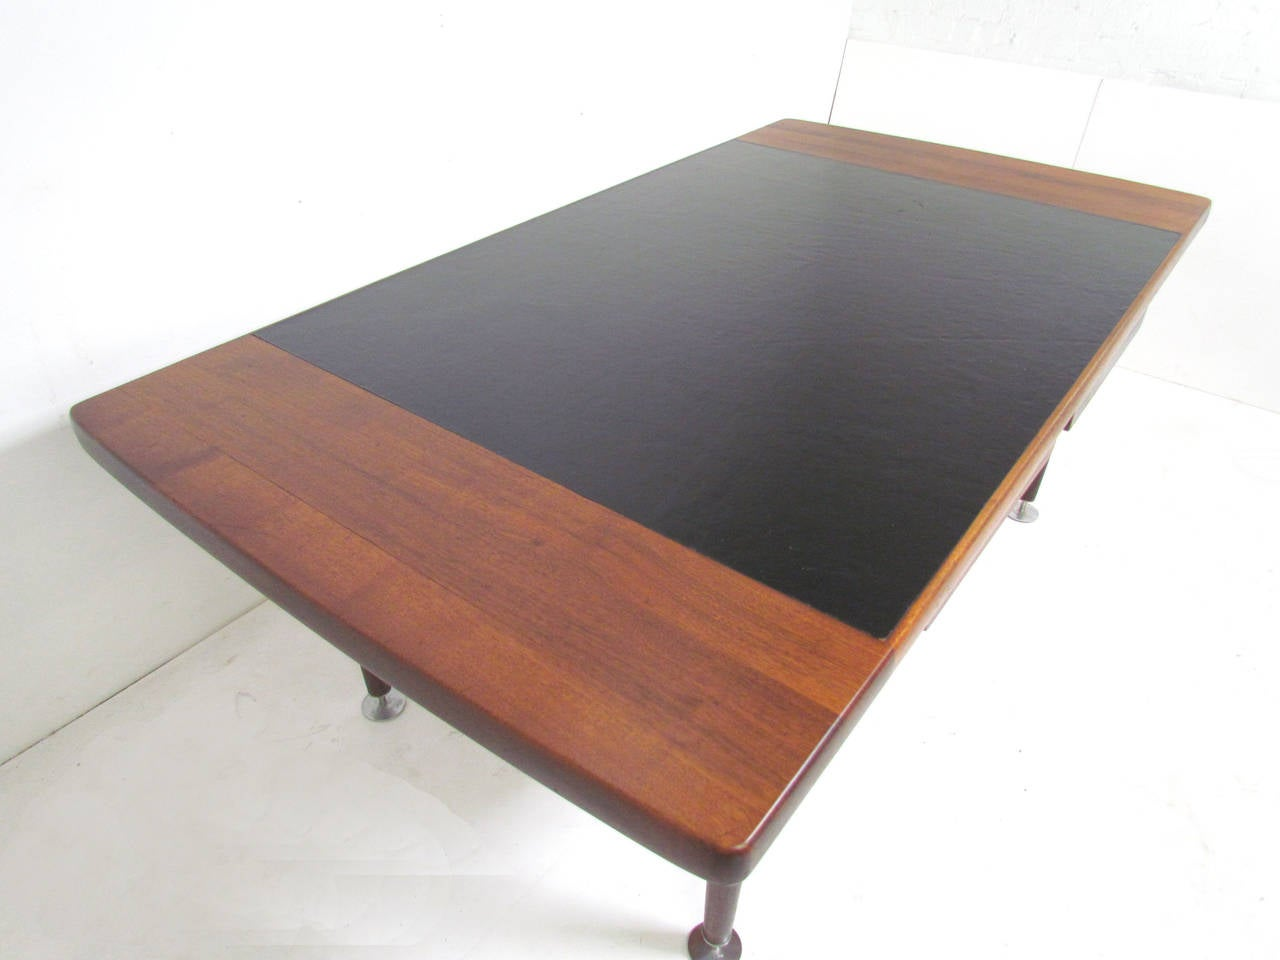 Custom executive desks - Custom Executive Desk In Leather And Walnut In The Manner Of Jens Risom 3